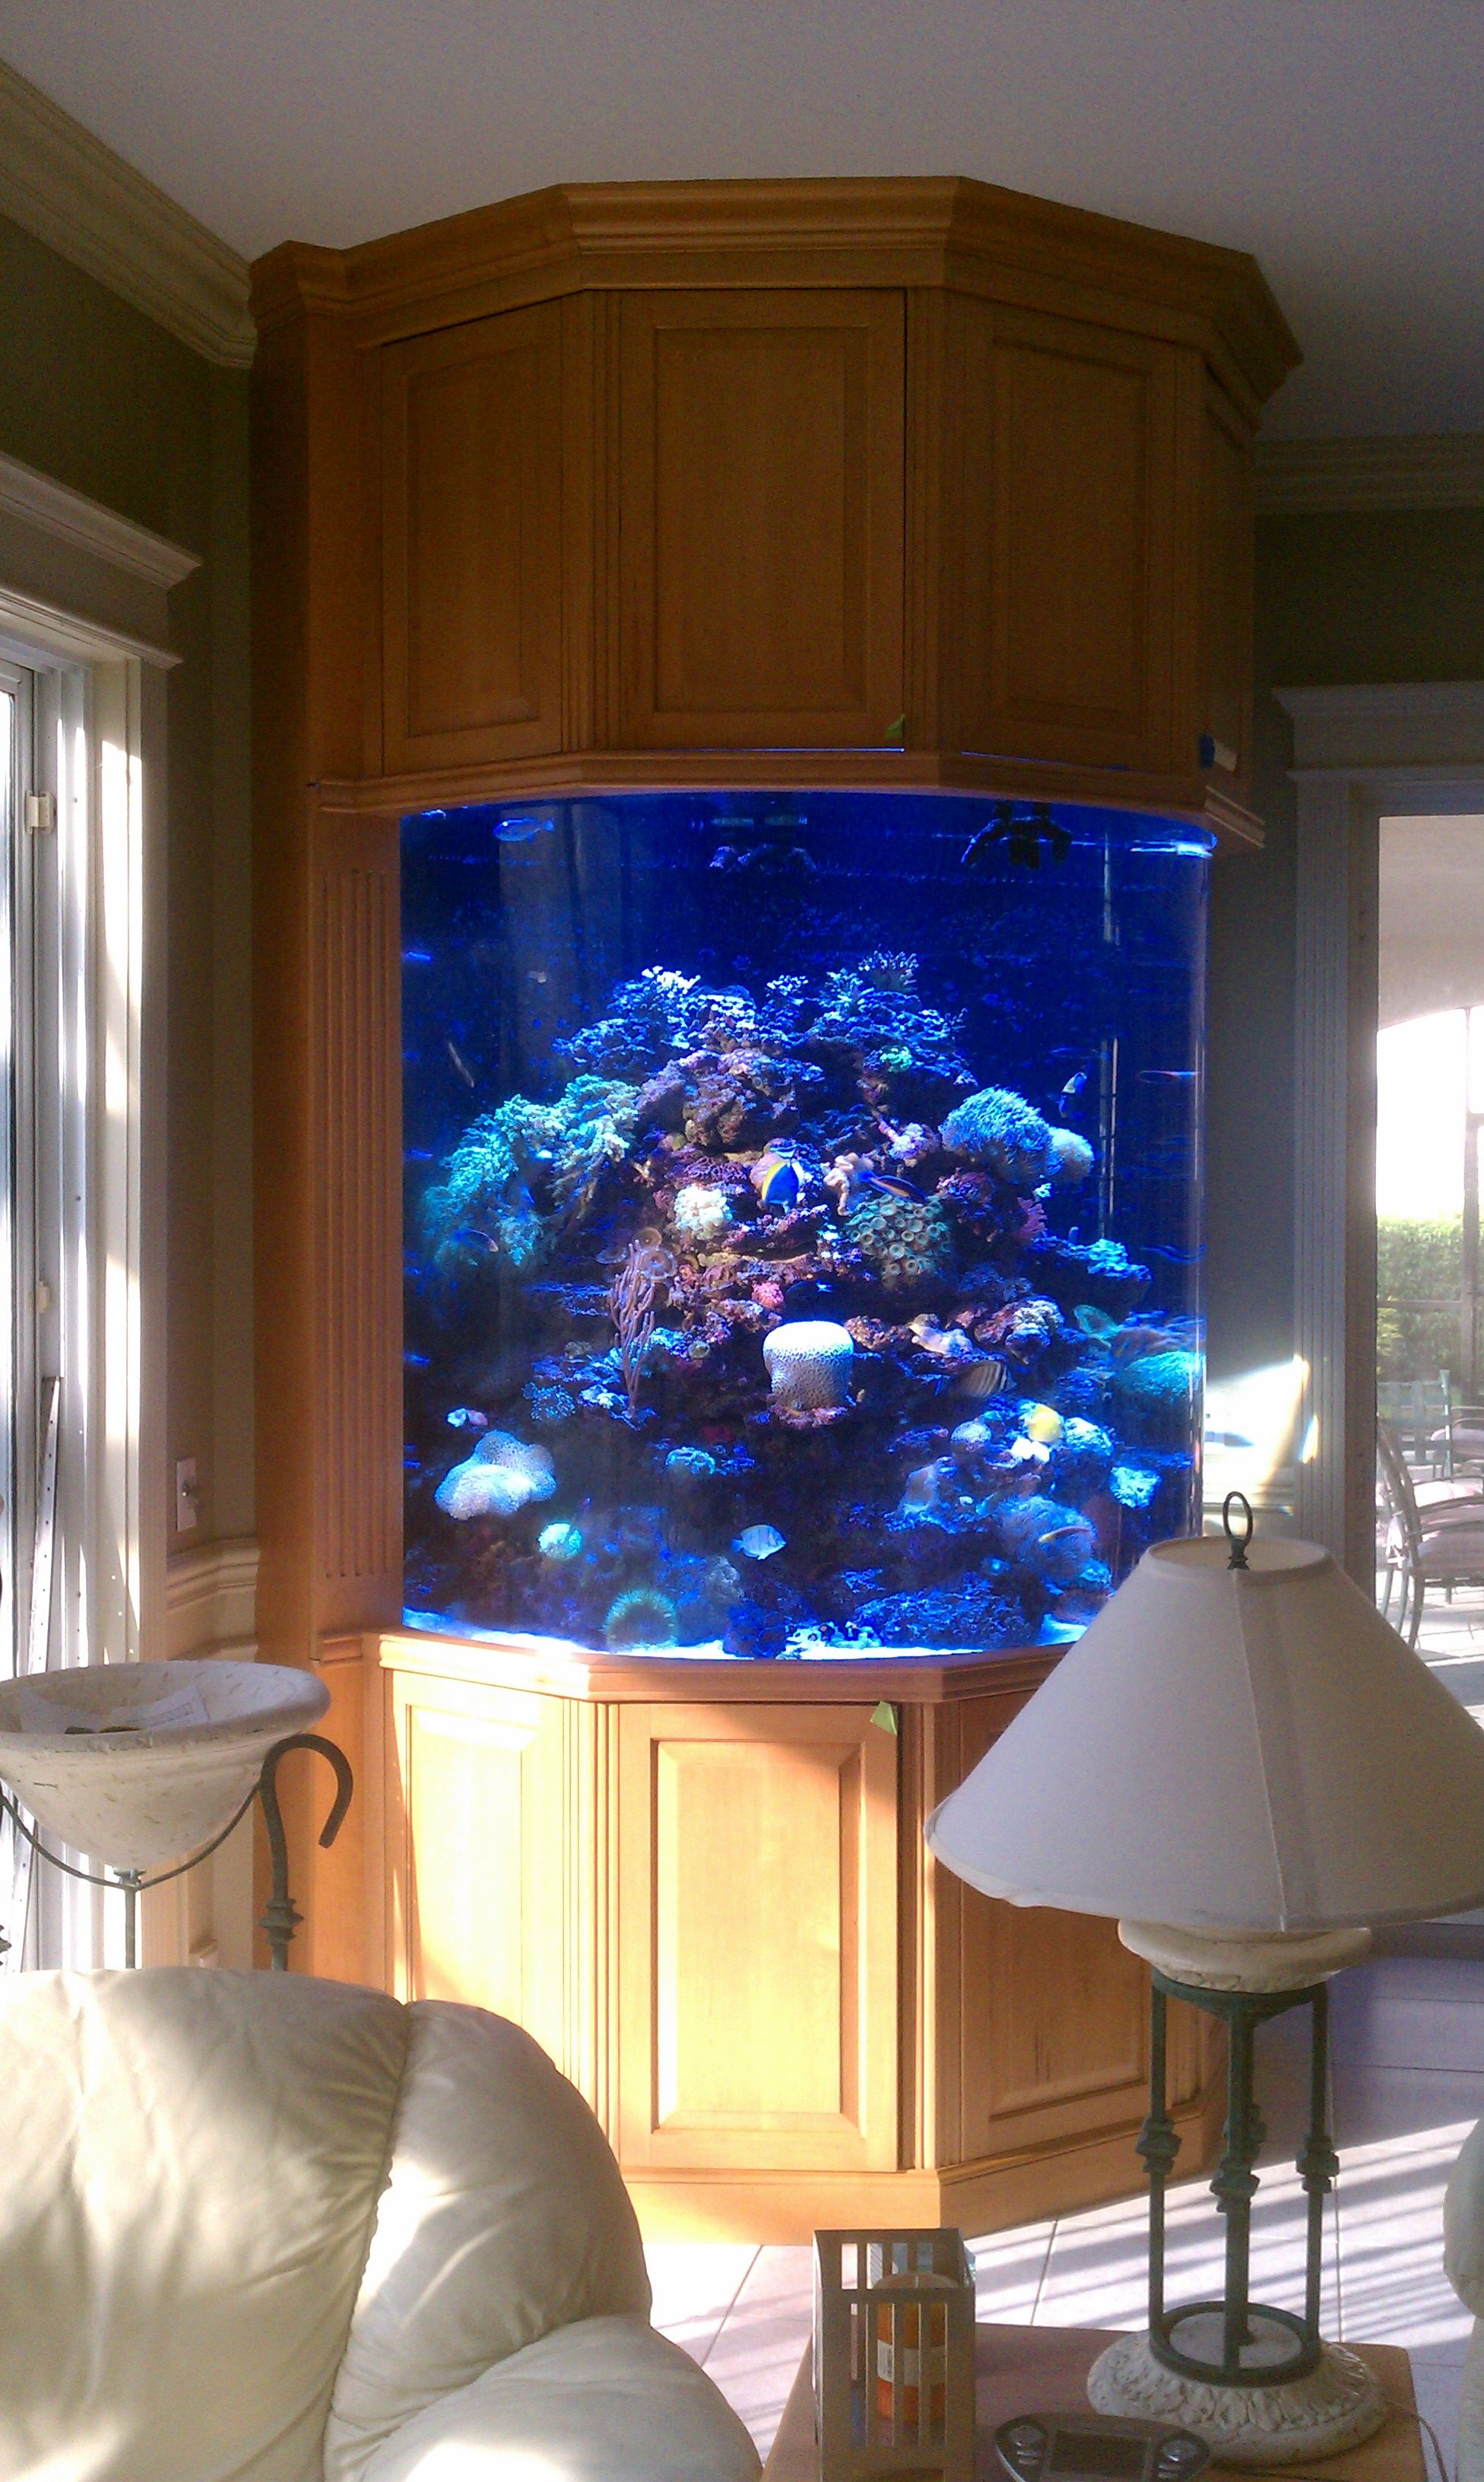 Custom fish tank cabinetry cabinetry by ecco woodcrafts for Custom fish tanks